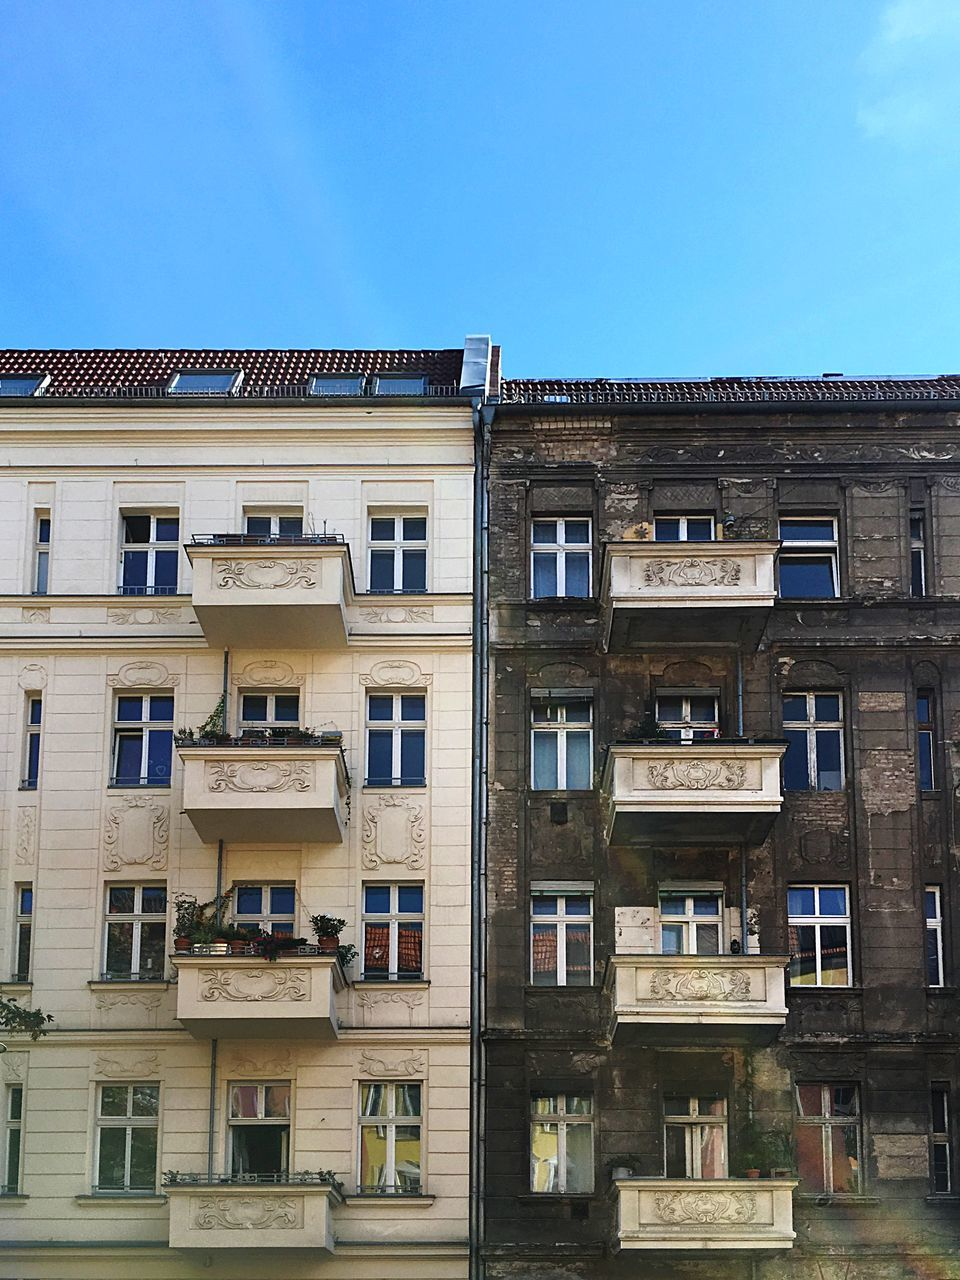 window, architecture, building exterior, balcony, built structure, no people, day, outdoors, residential building, low angle view, clear sky, sky, apartment, city